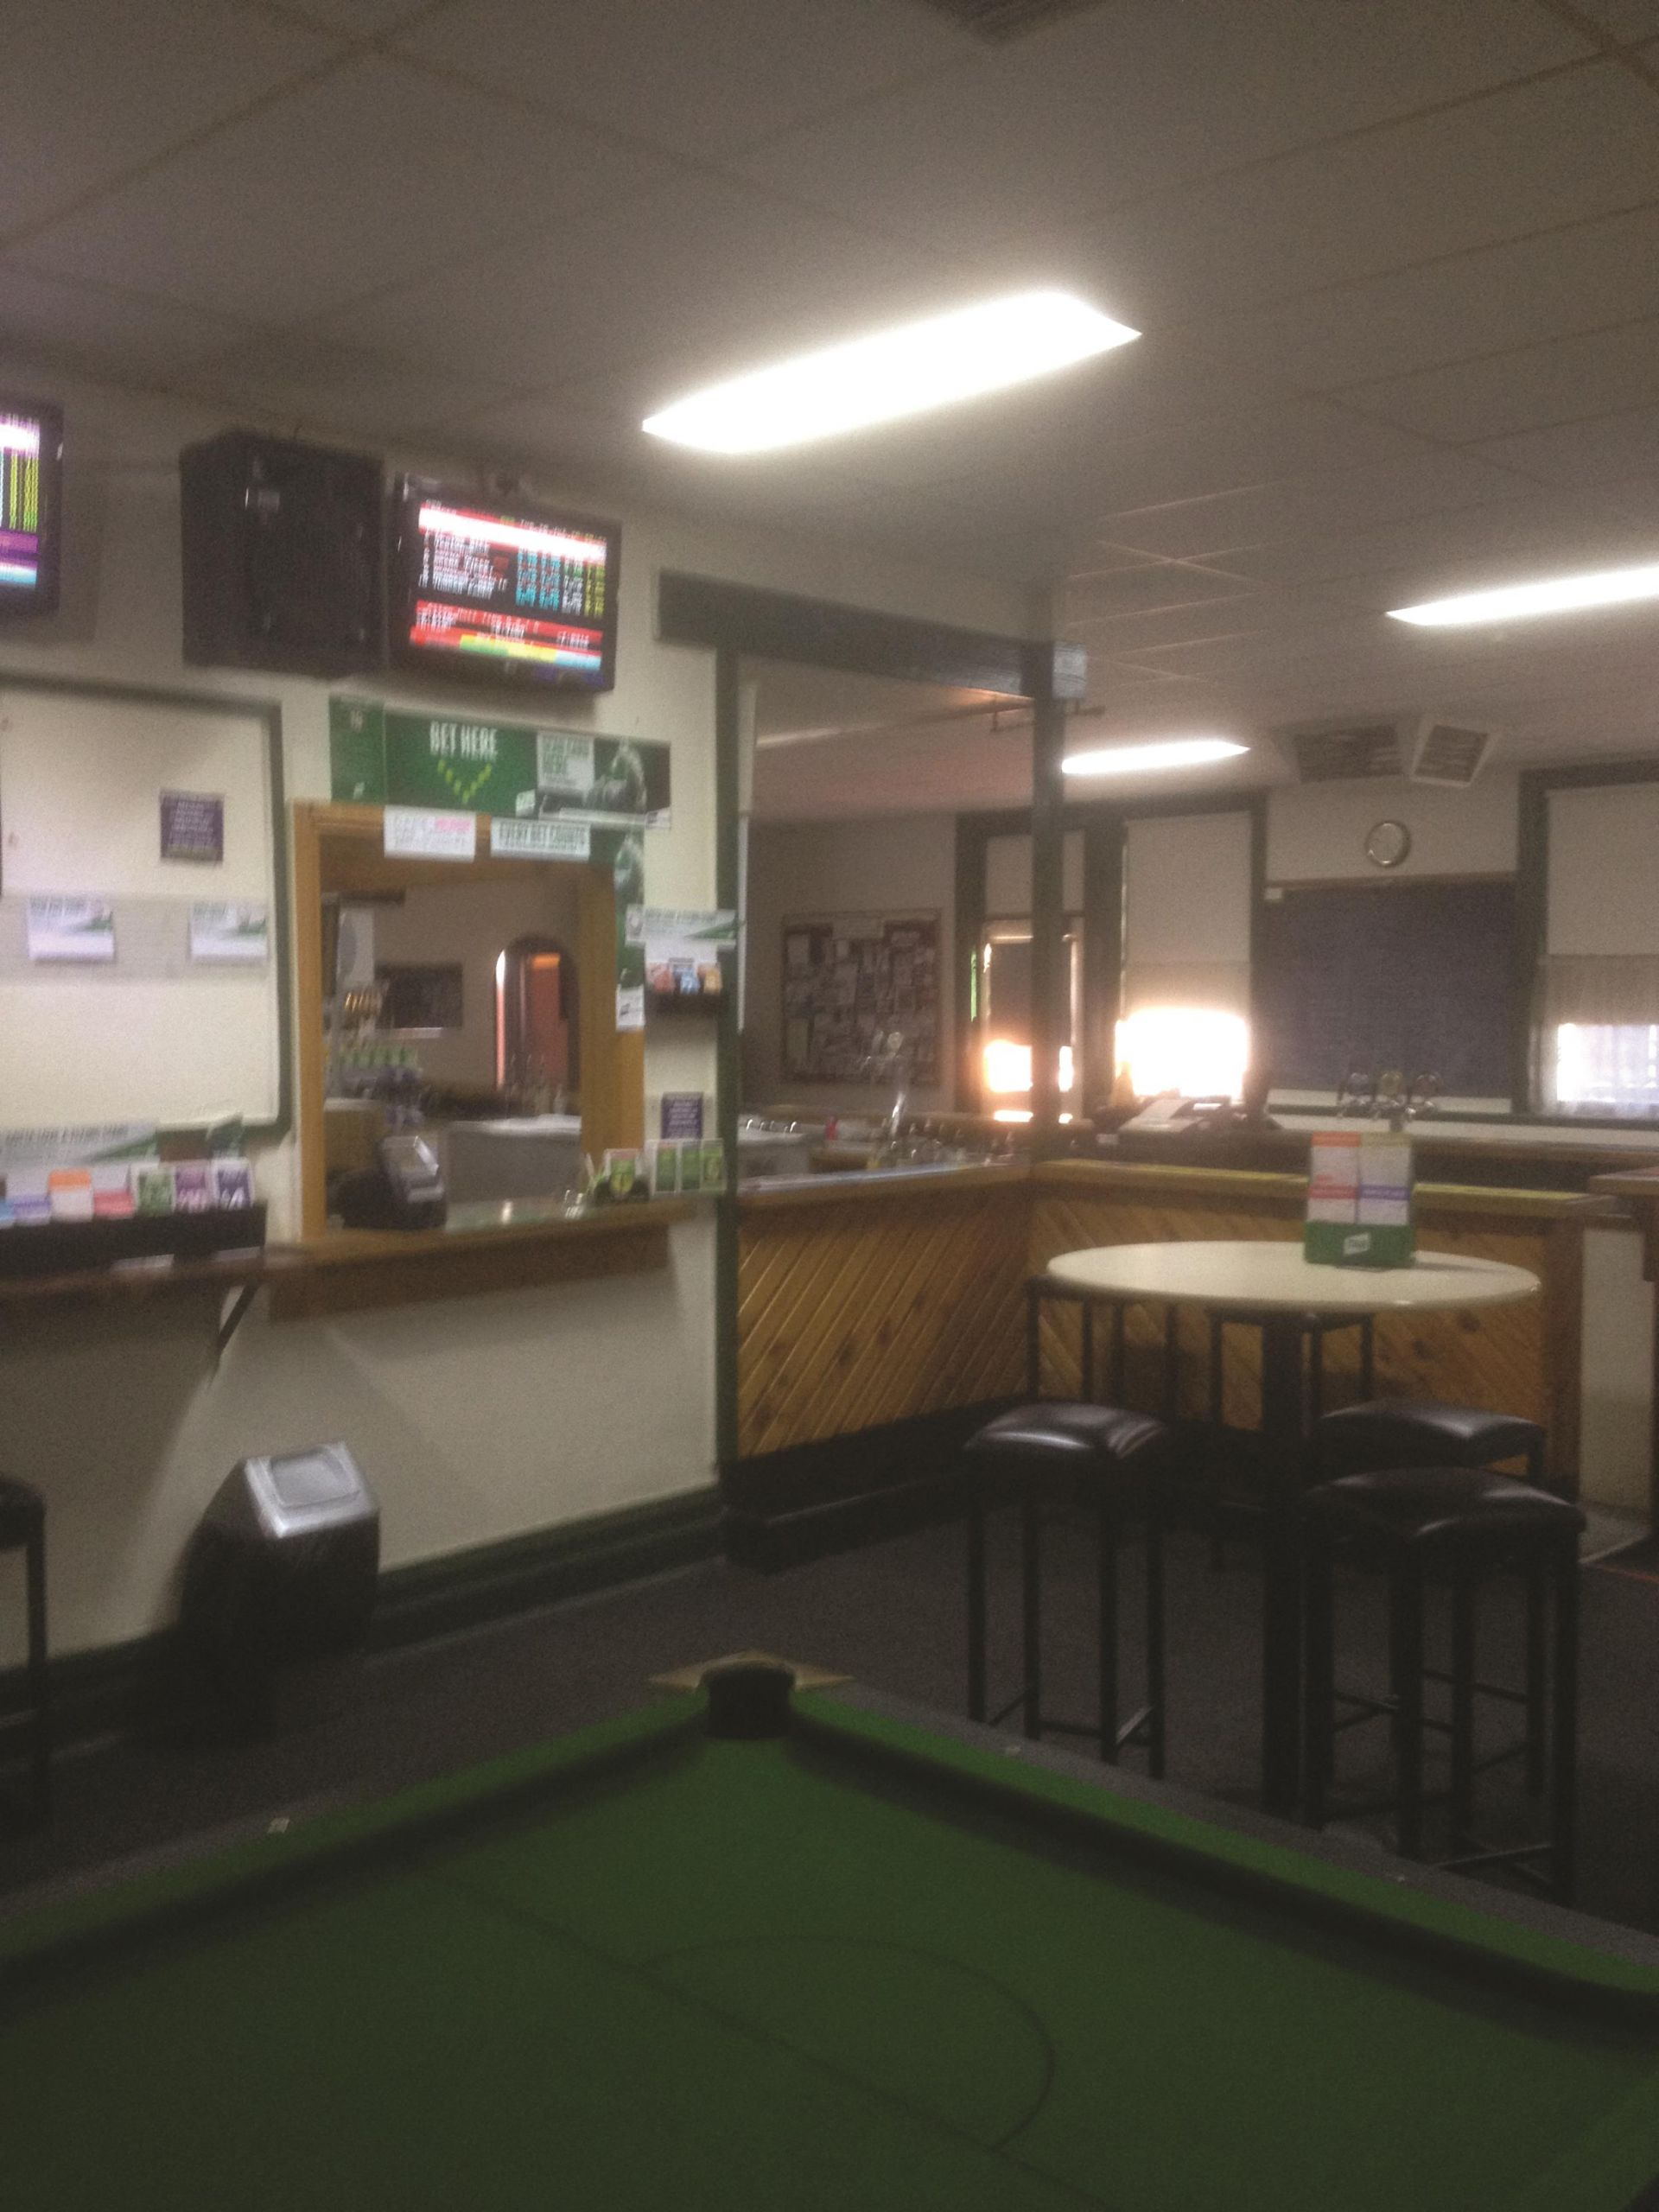 Below Valuation Hotel Business Plus Freehold - Donald, Vic